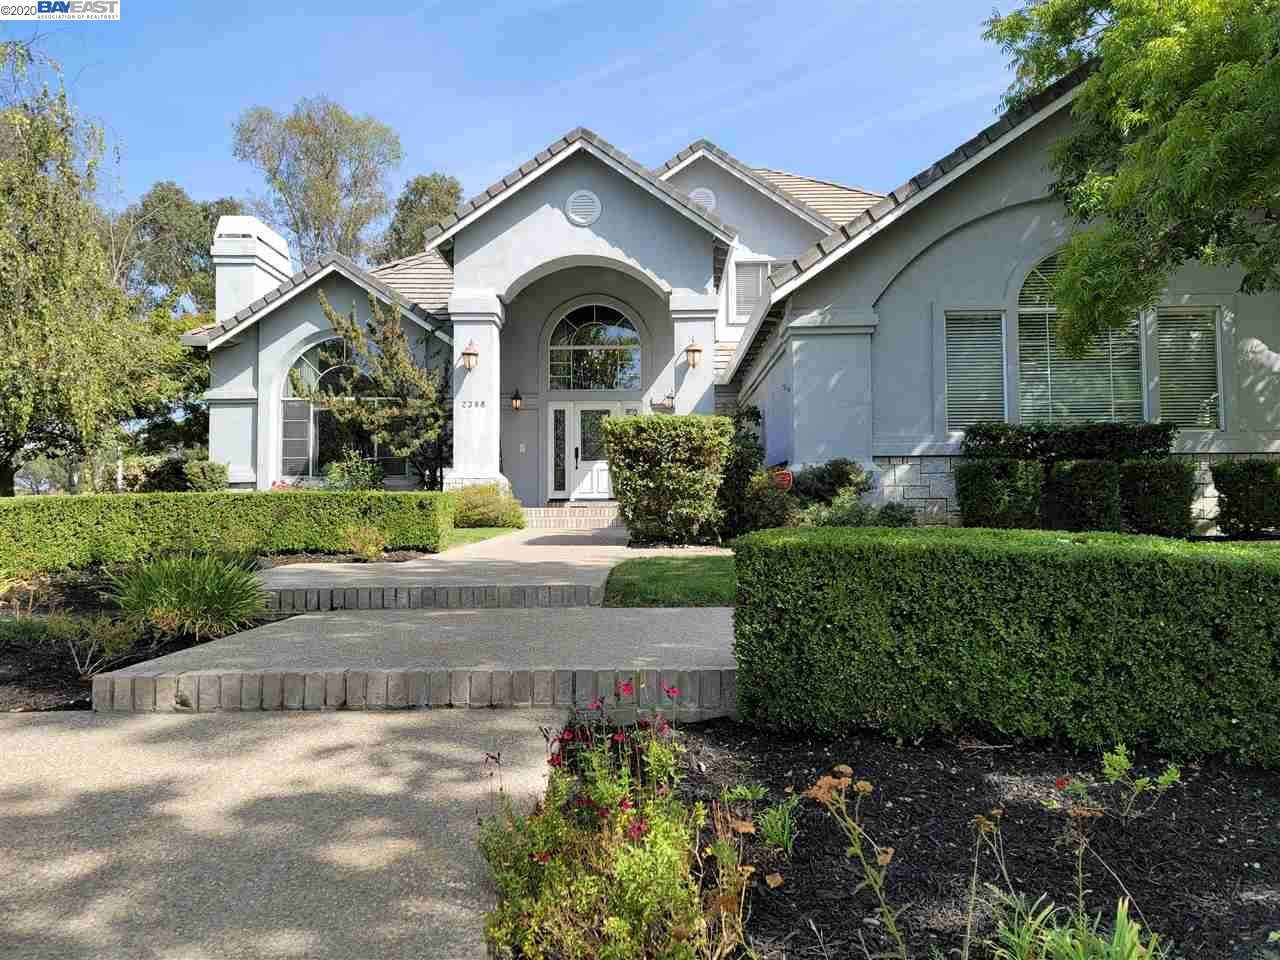 2366 Gamay Cmn LIVERMORE, CA 94550